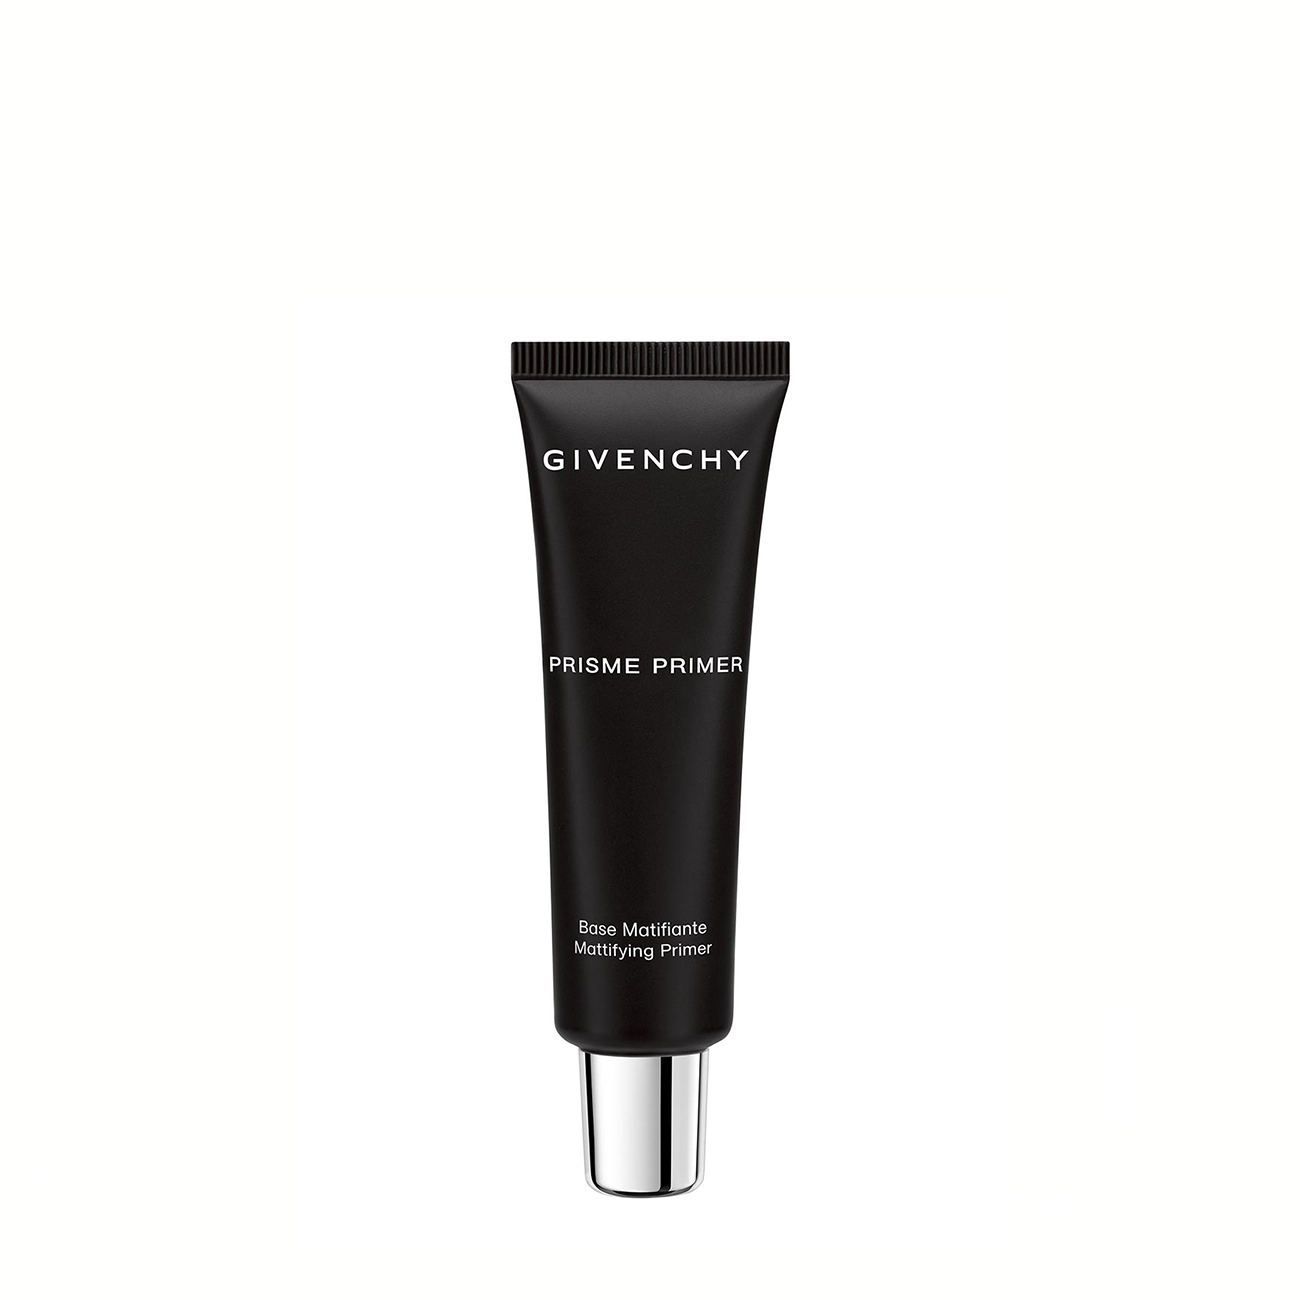 Prisme Primer 06 30ml Givenchy imagine 2021 bestvalue.eu